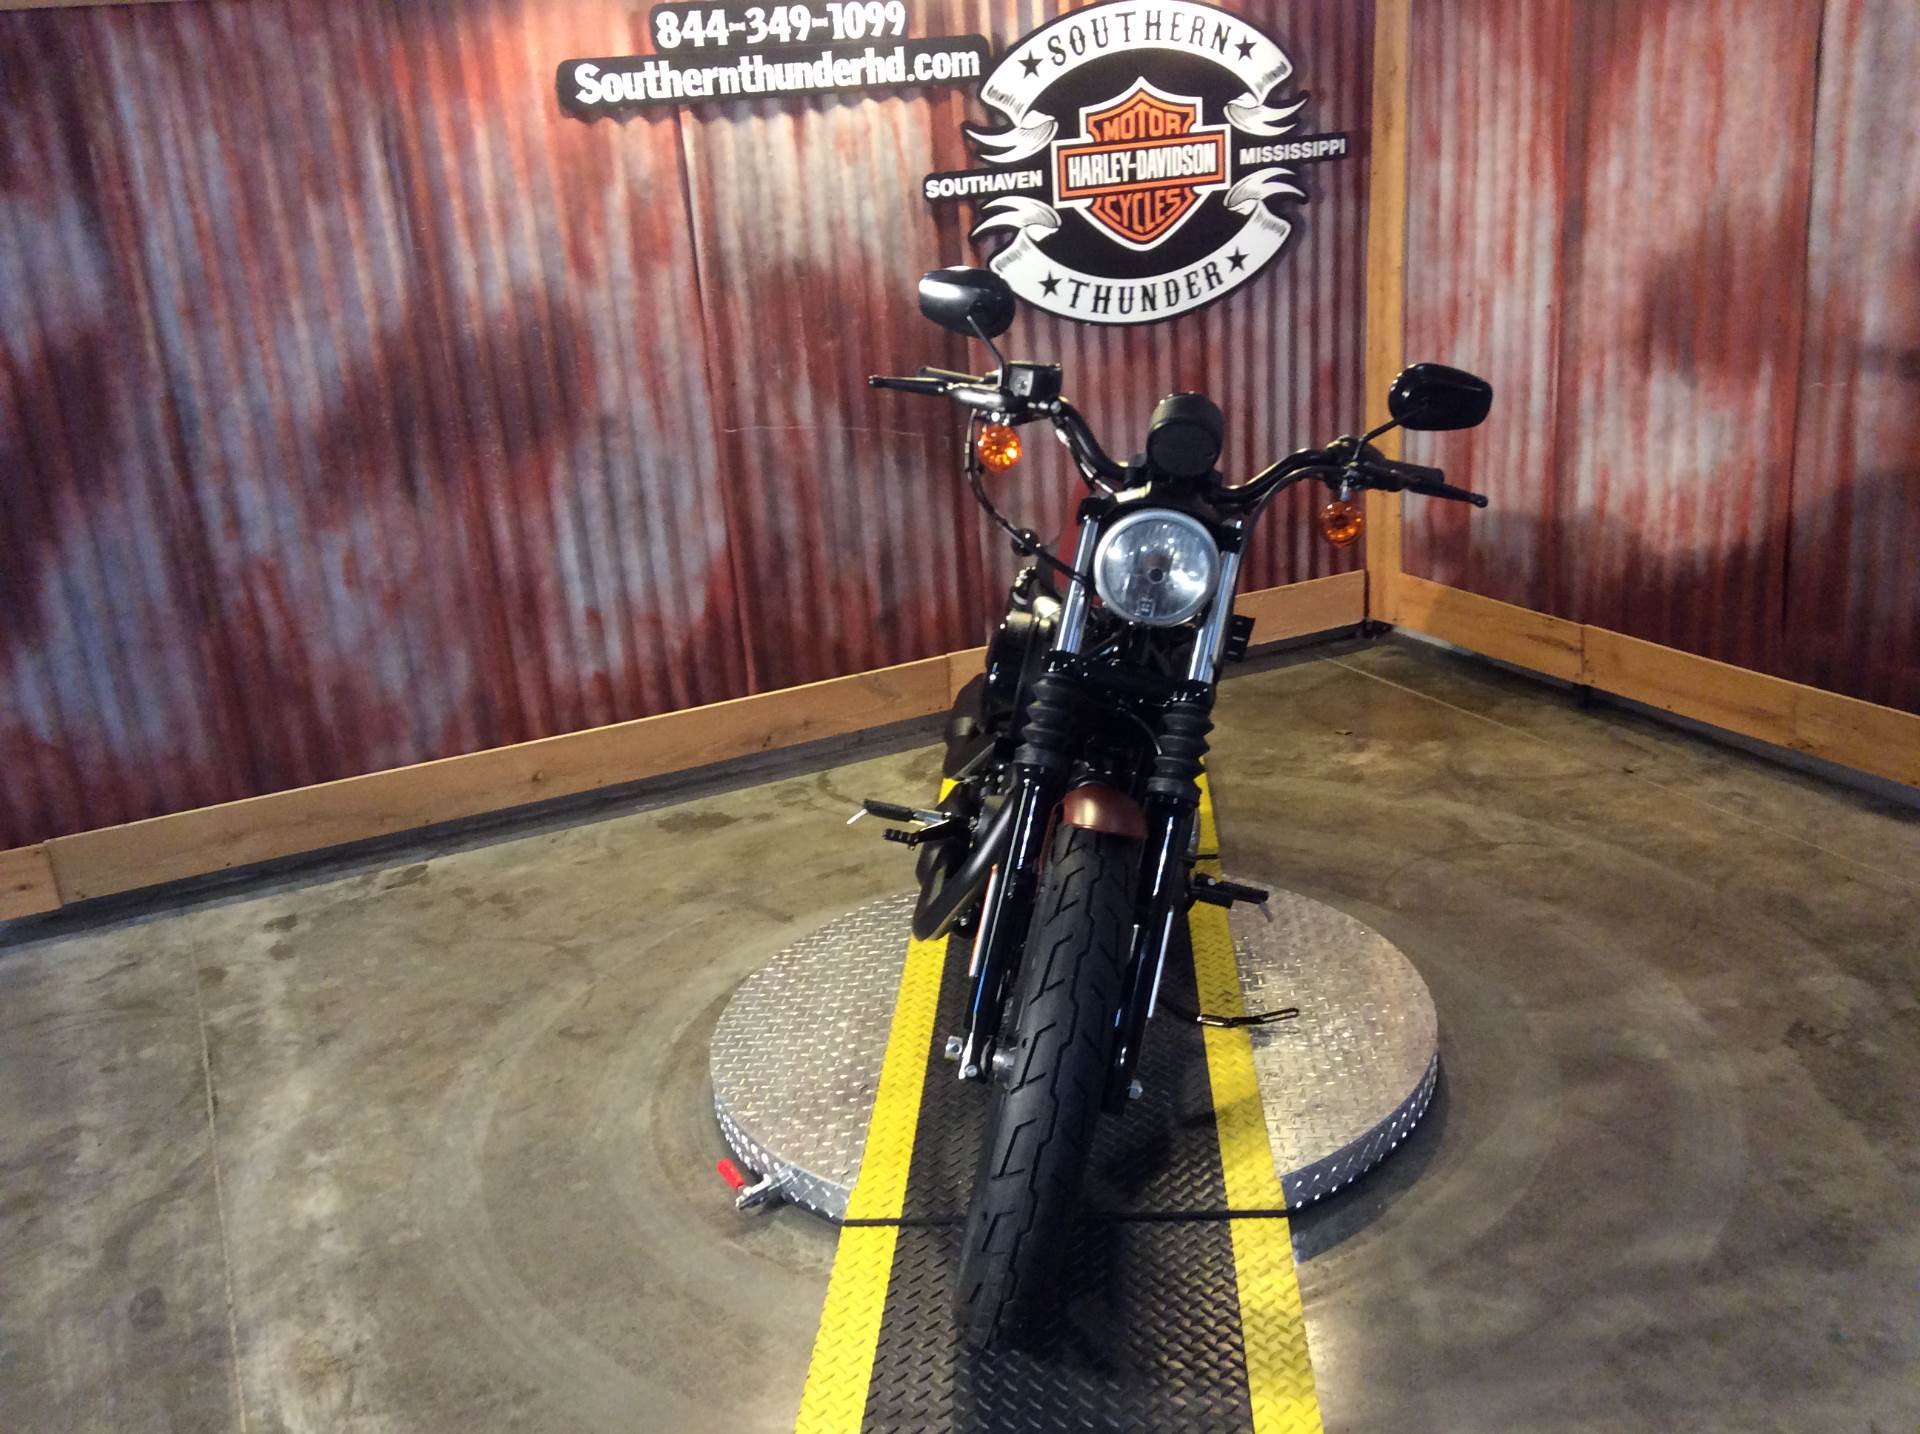 2017 Harley-Davidson Iron 883™ in Southaven, Mississippi